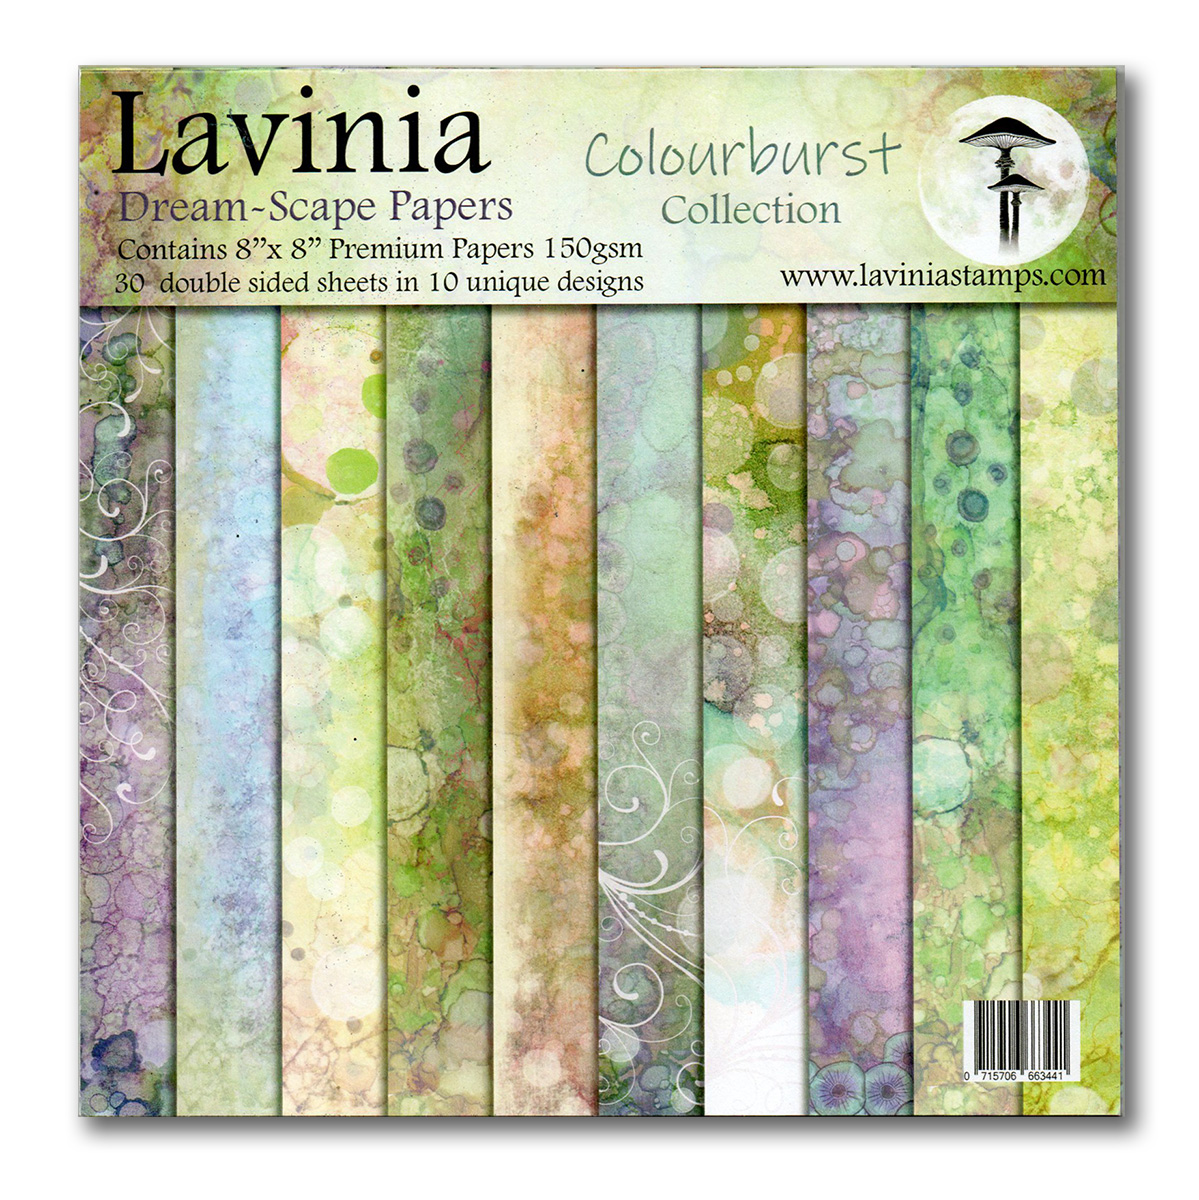 Dreamscape Papers. The Colourburst Collection - Lavinia